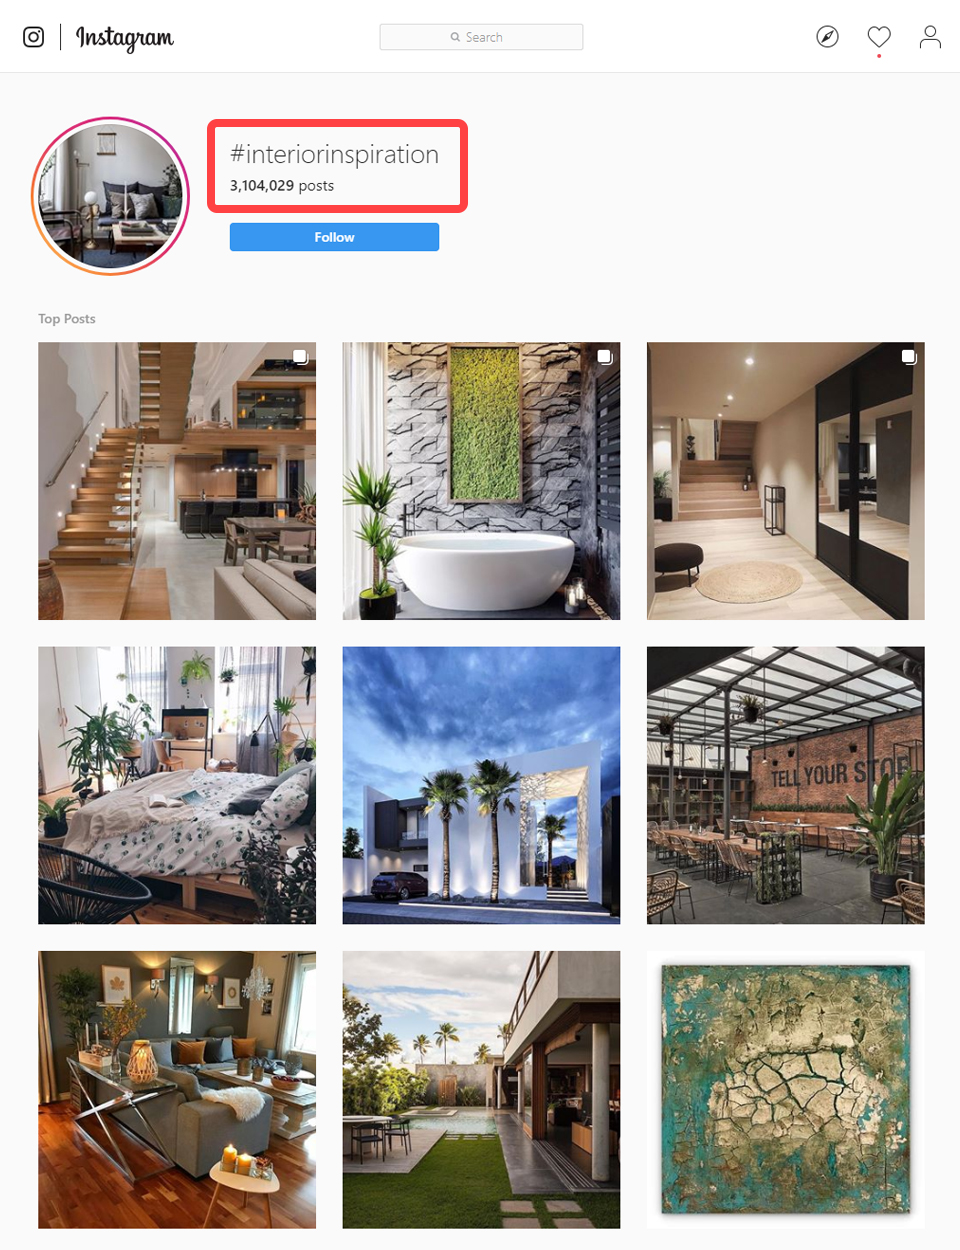 The Best Instagram Hashtag Strategy 2019 Gain More Followers